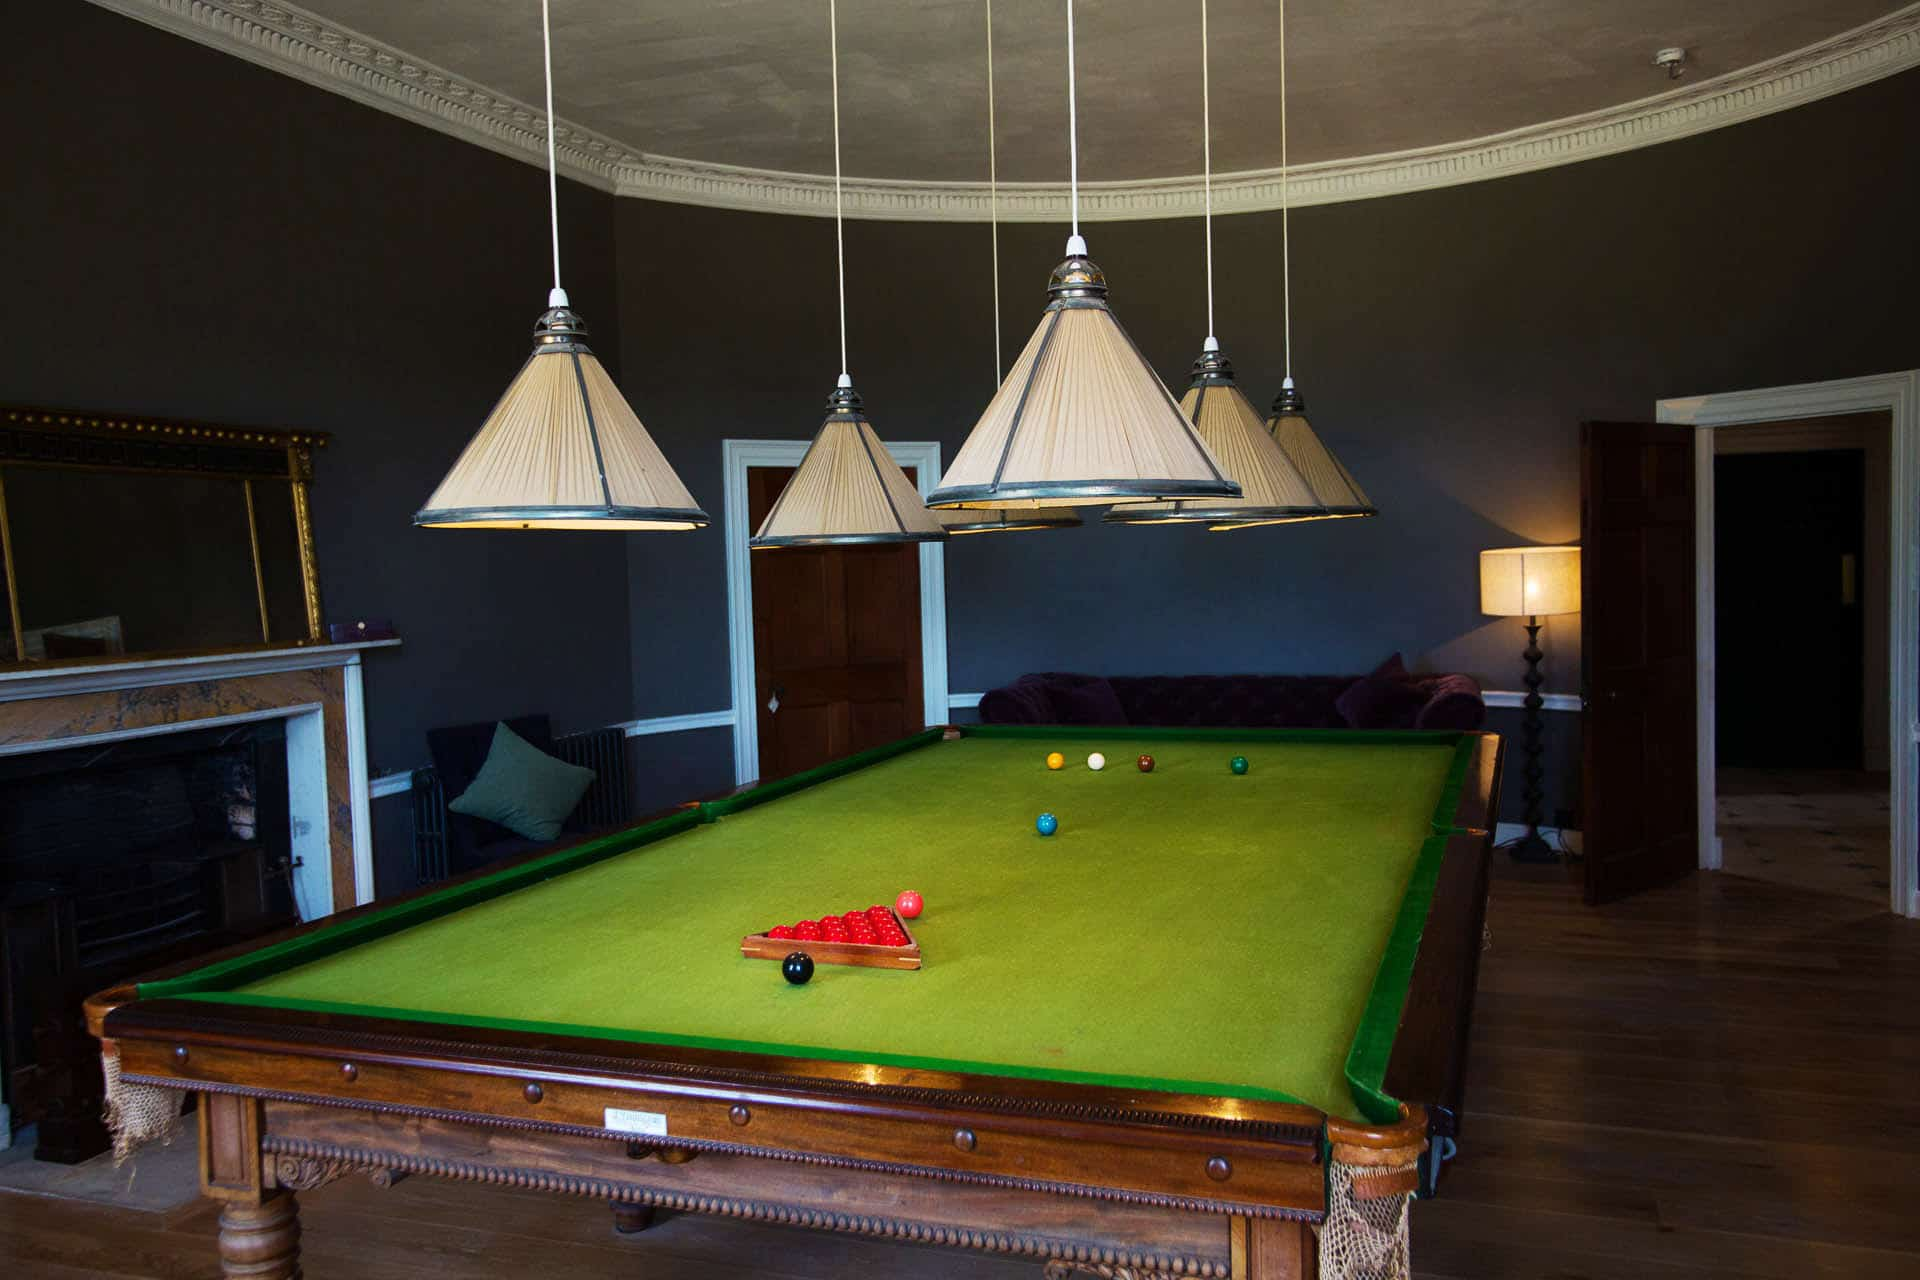 rockbeare manor -billard room